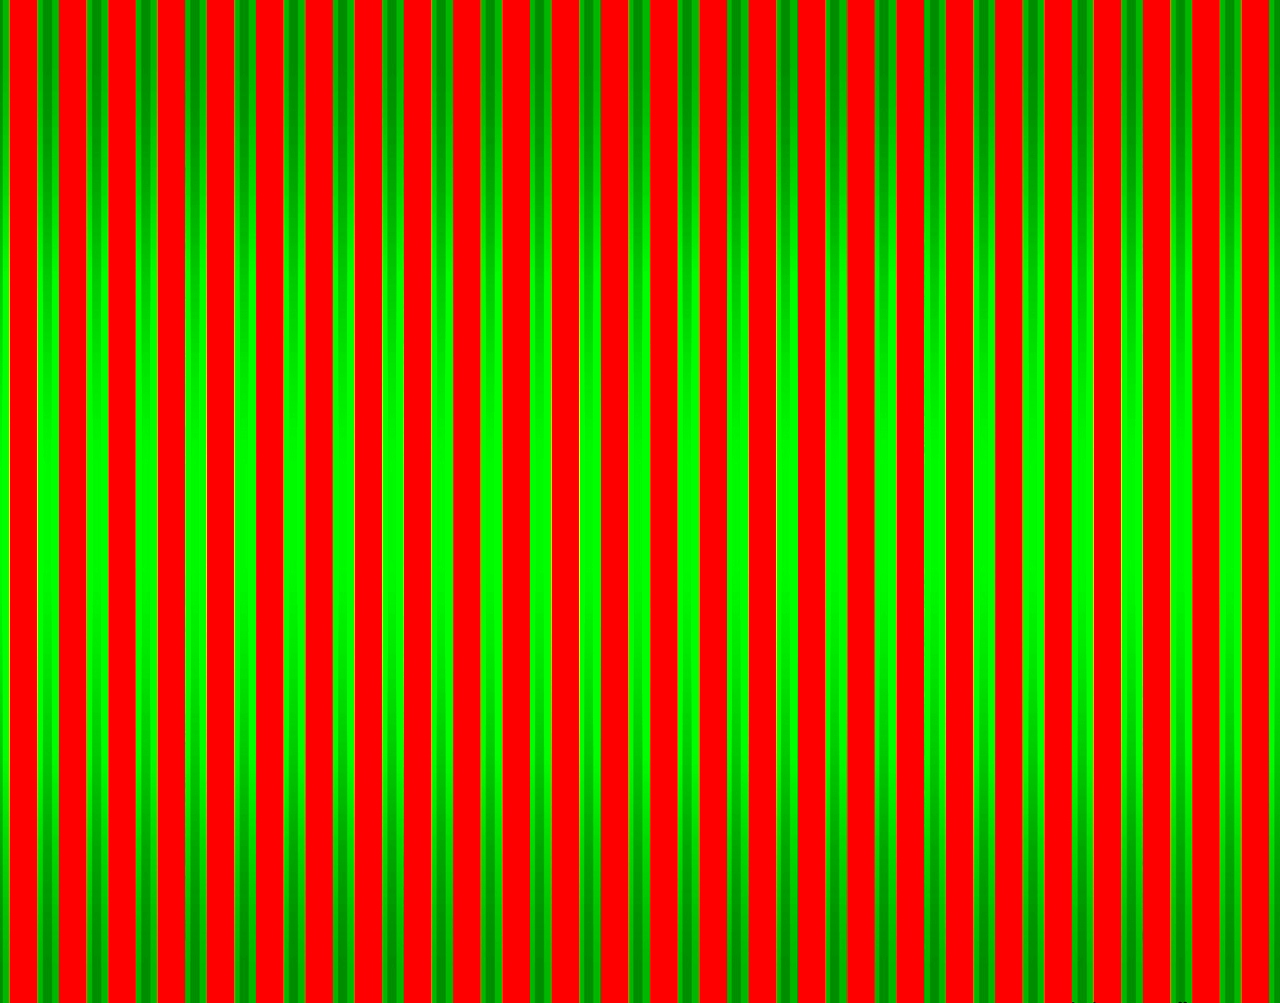 3d Moving Wallpaper For Windows Phone Download Red And Green Striped Wallpaper Gallery